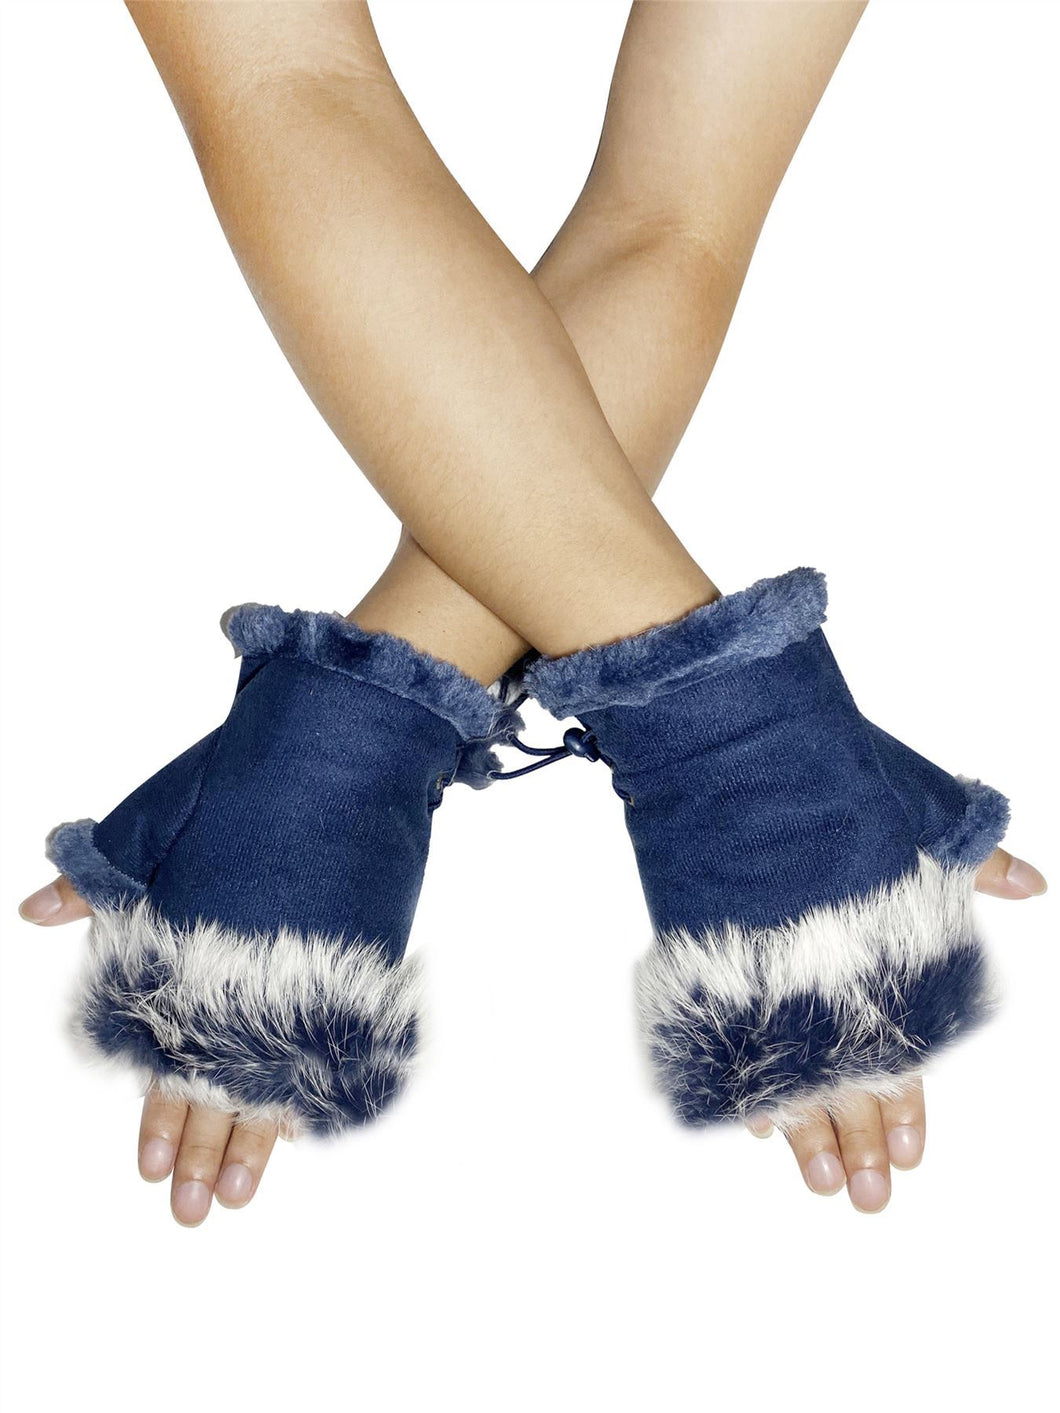 Real Fur Fingerless Mittens - Navy